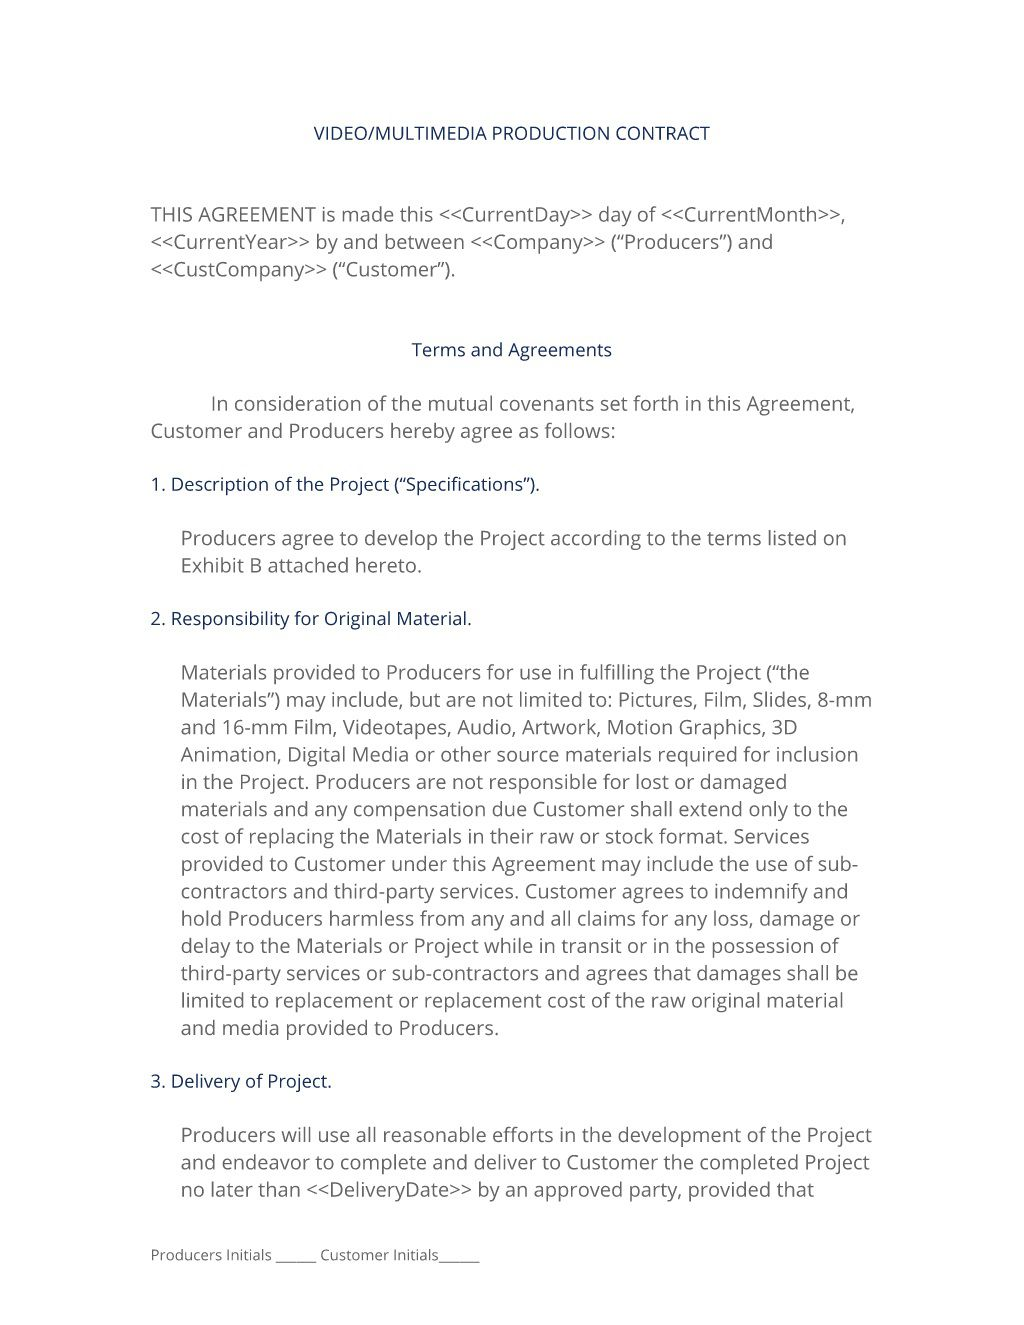 002 Shocking Wedding Videographer Contract Template High Definition  Videography PdfFull